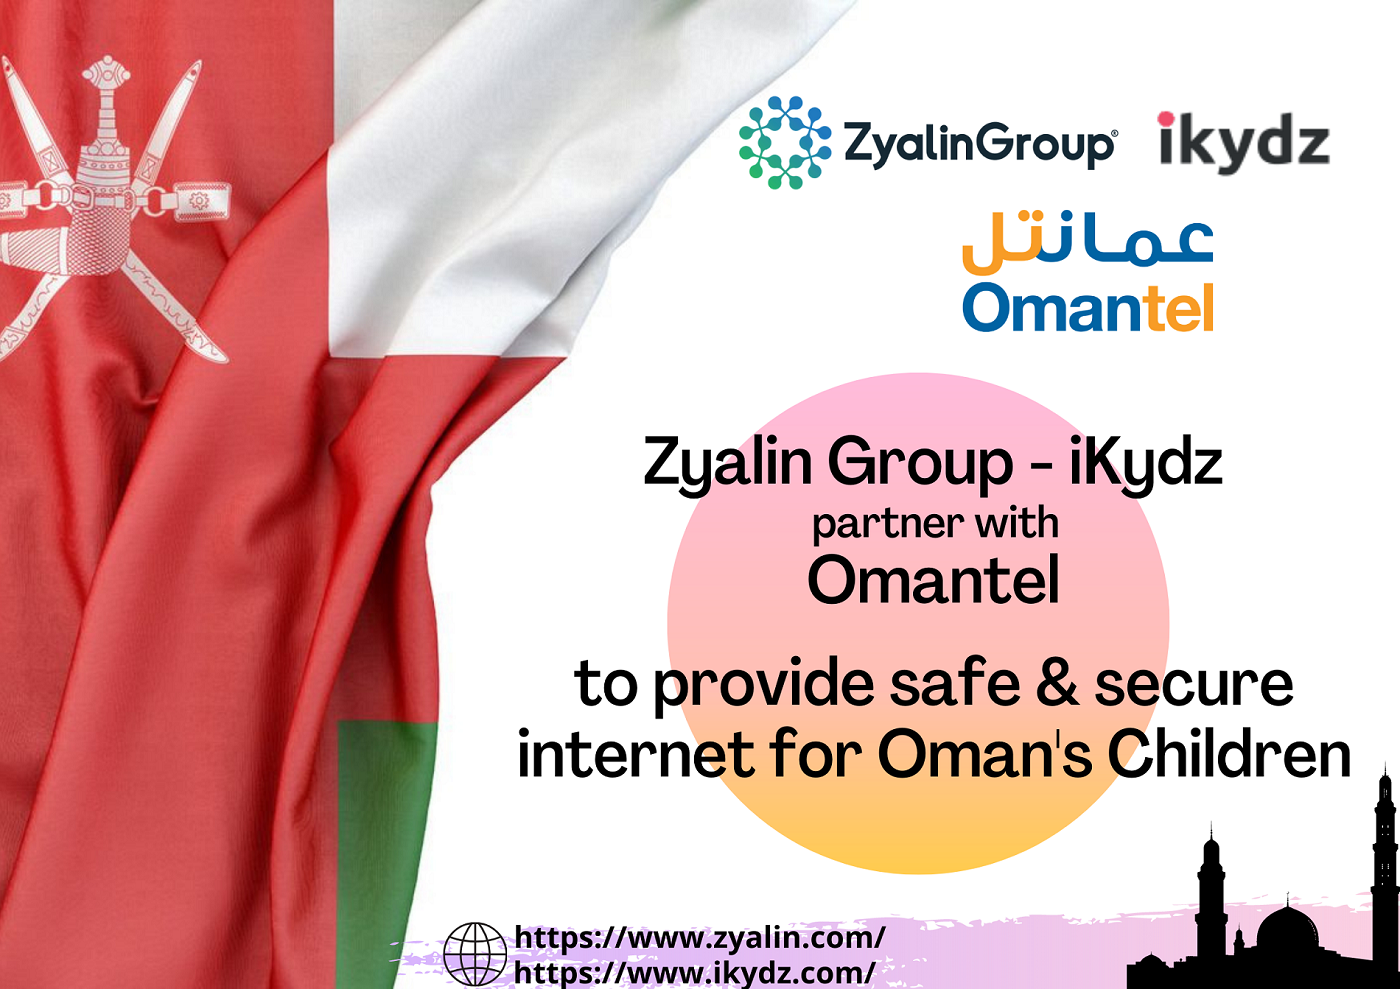 Zyalin Group Launches it's Parental Control Suite in The Sultanate of Oman in Partnership with Omantel